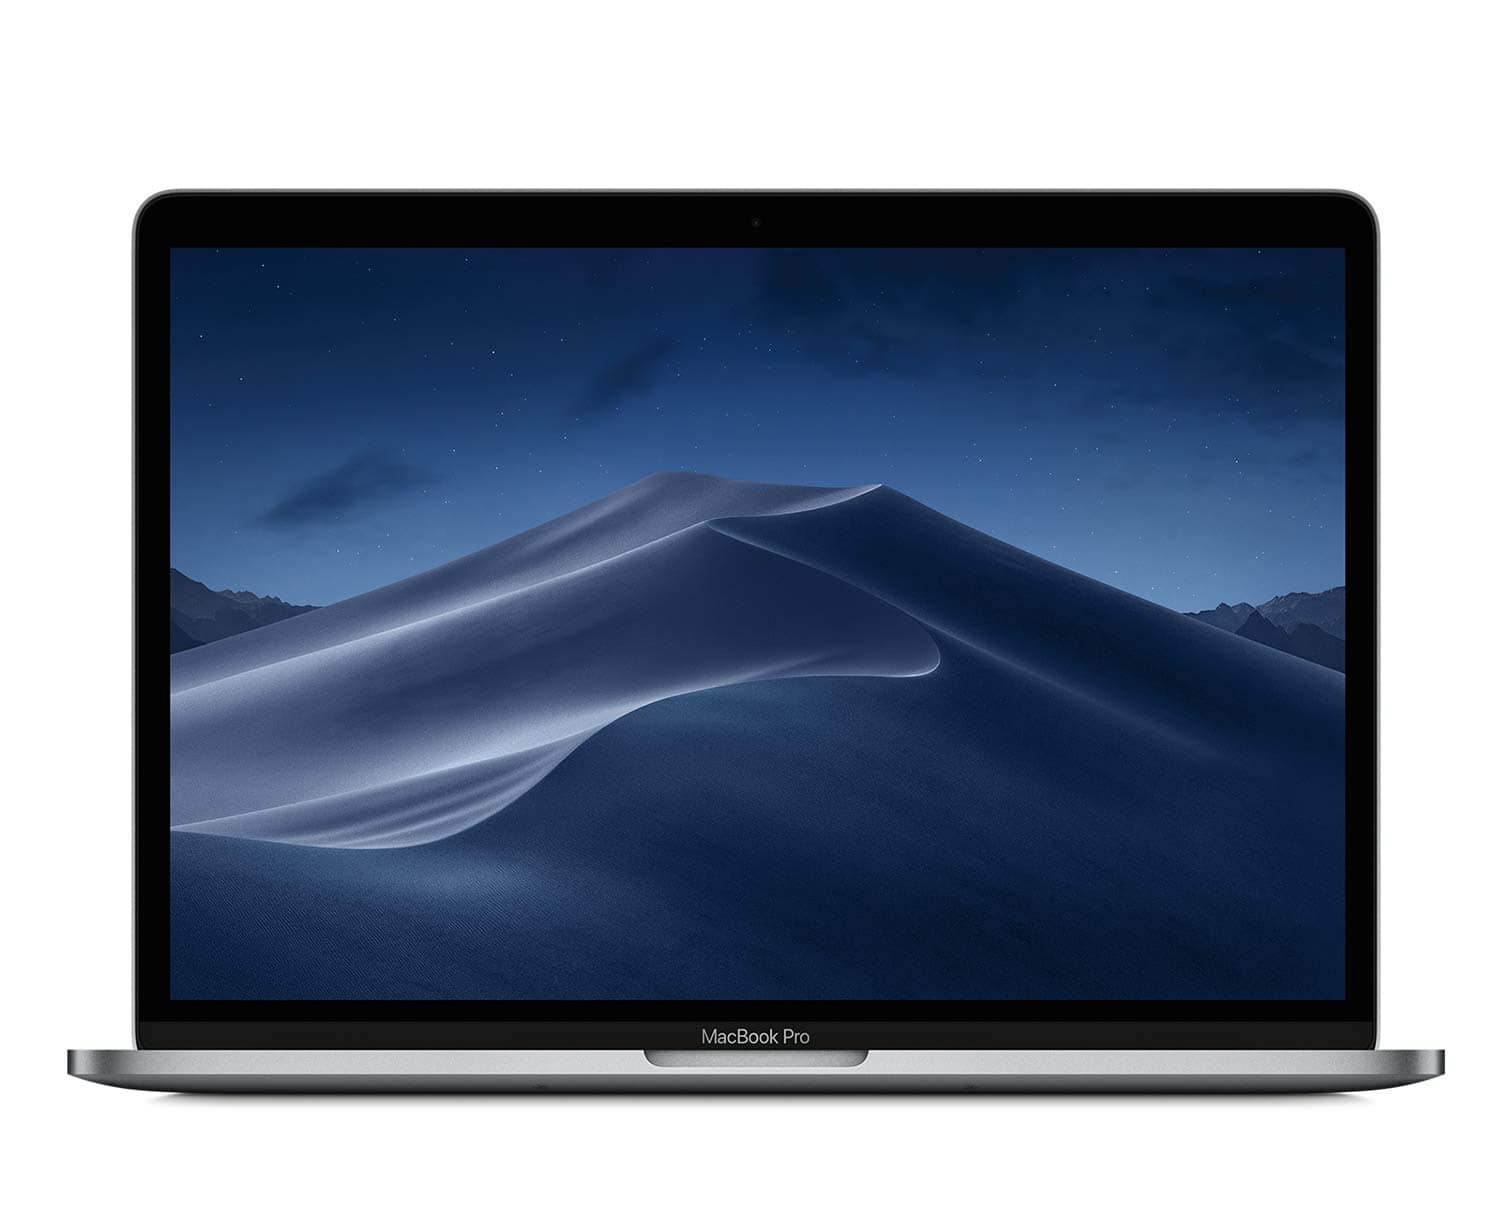 Apple MacBook Pro (13-inch, 2.3GHz Dual-Core Intel Core i5, 8GB RAM, 128GB SSD) - Space Gray $1000